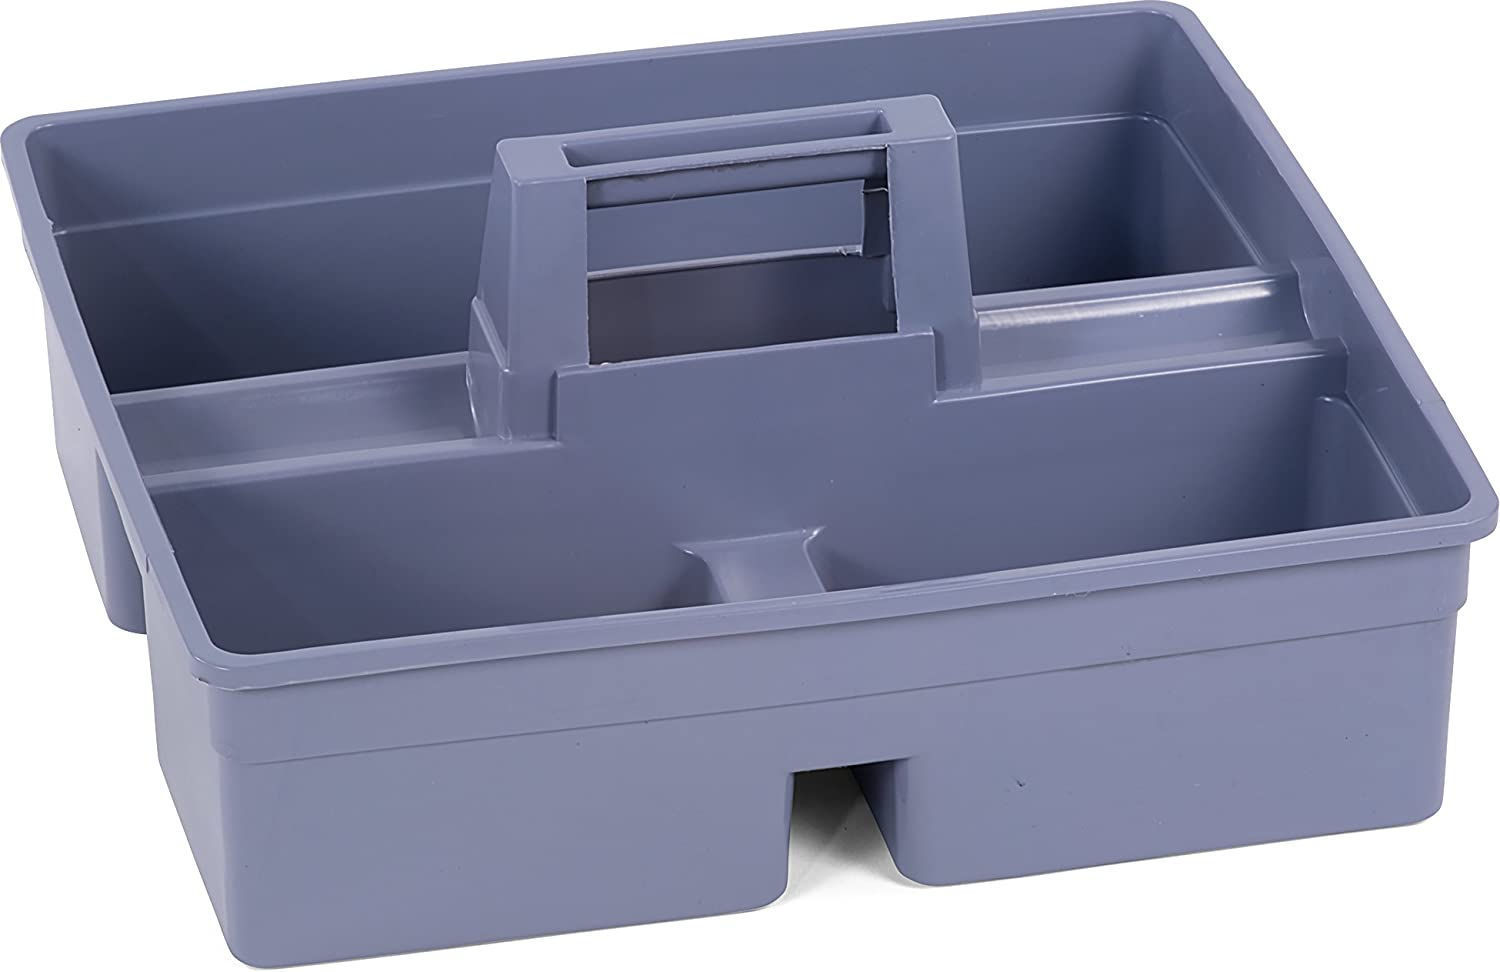 Carlisle JC1945CB23 Polypropylene Tool Caddy, 15.13 Length x 13.13 Width x 8-1/2 Height, Gray, For Janitorial Cart Carlisle Corporation